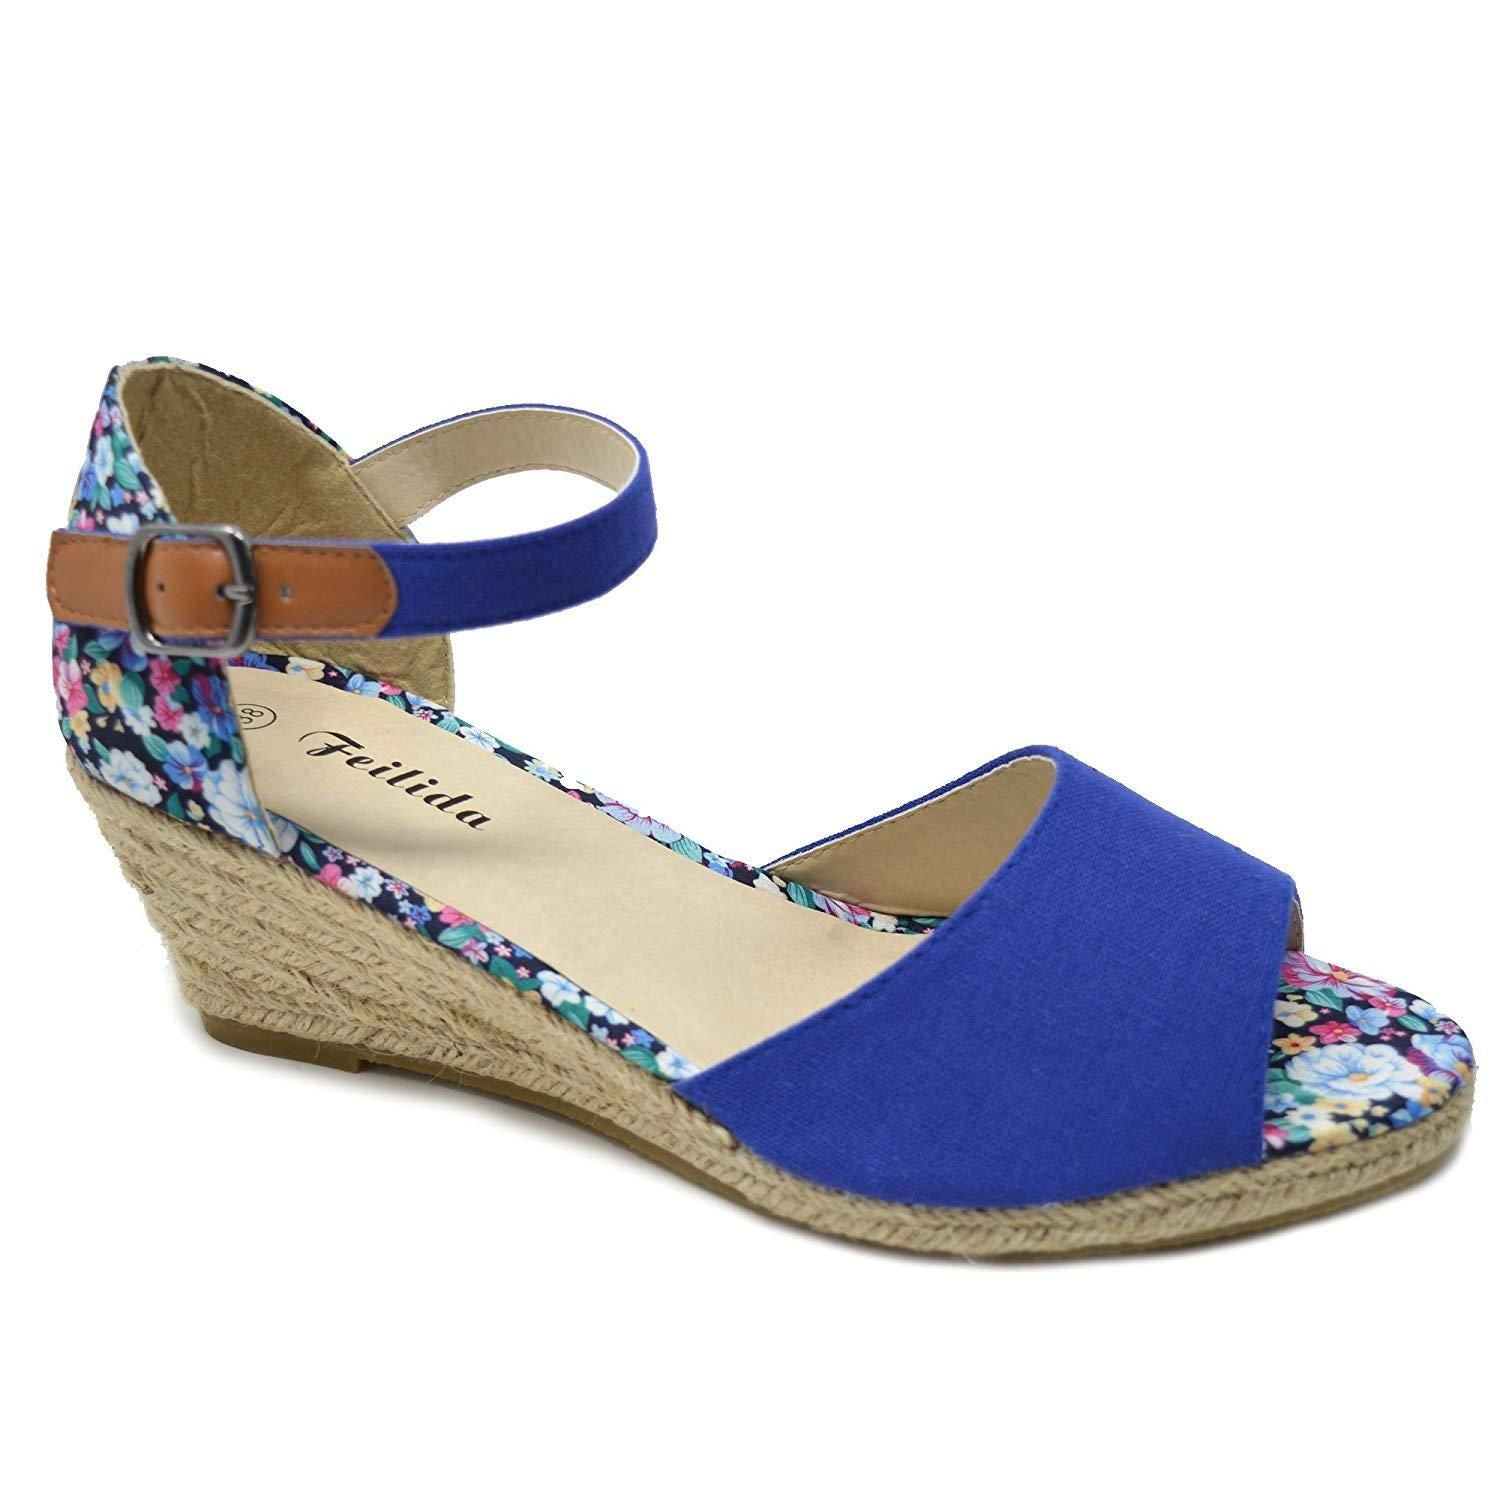 518404a0305 Xelay Womens Wedge Sandals Espadrille Ankle Strap Buckle Peep Toe Summer  Shoes Size 3-8